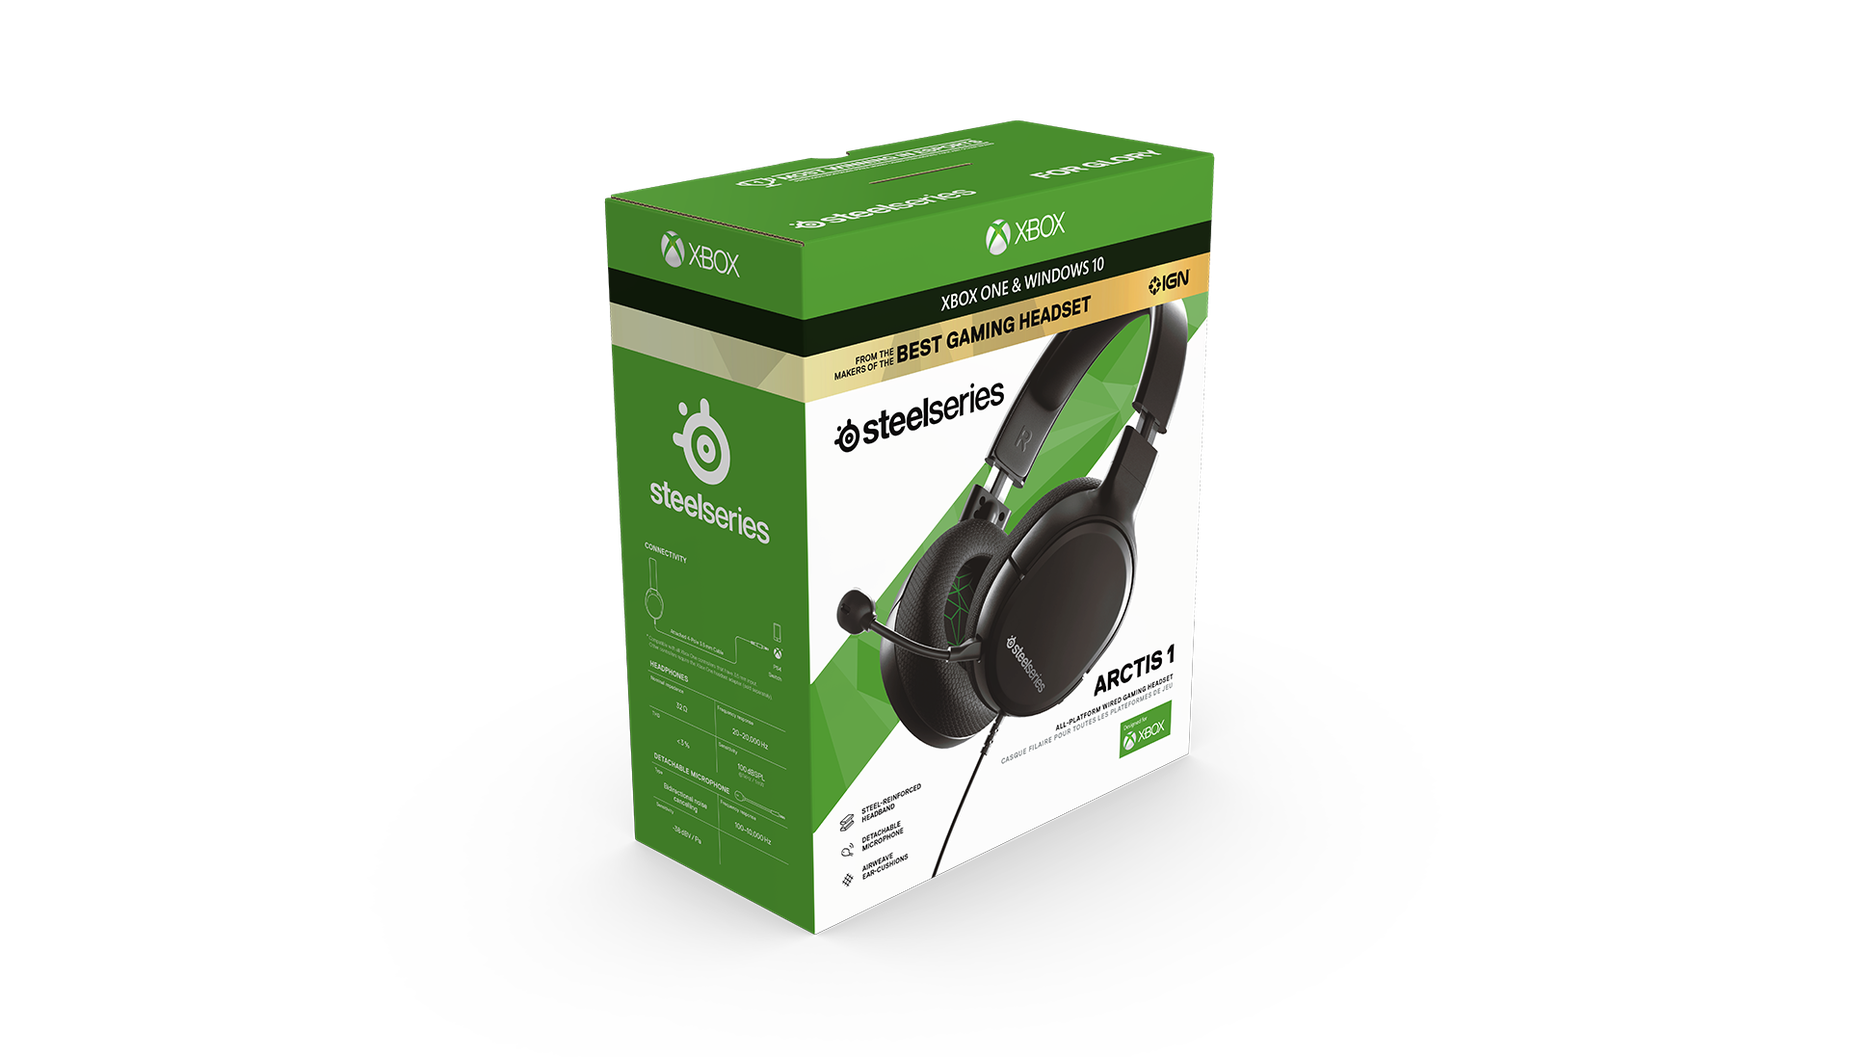 Retail packaging for the Arctis 1 for Xbox gaming headset